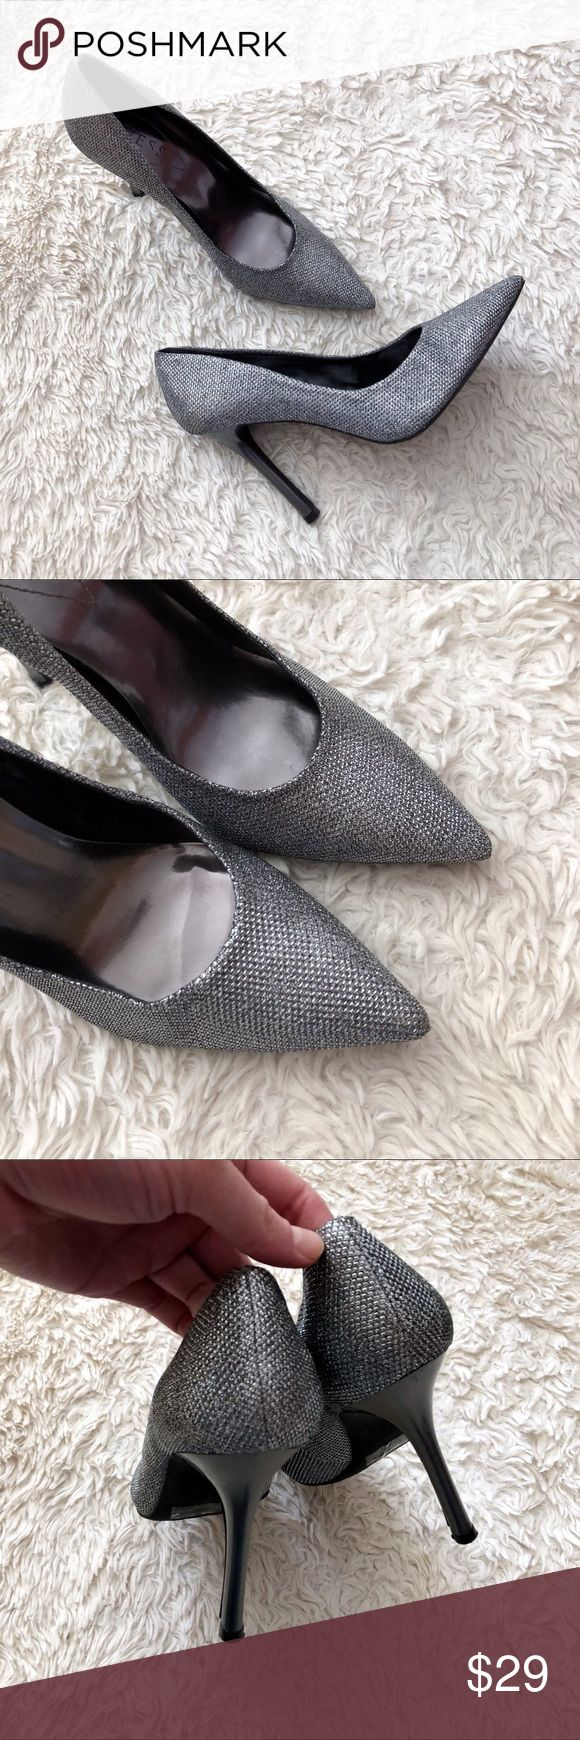 """GUESS Sparkly Metallic Glitter Pointy Toe Pumps Pointy toe sparkly sequin silver metallic pumps. Excellent Condition—one tiny flaw that you'd never notice without super close inspection. Heel Height: 4"""". ✨OFFERS WELCOME✨ Guess Shoes Heels"""